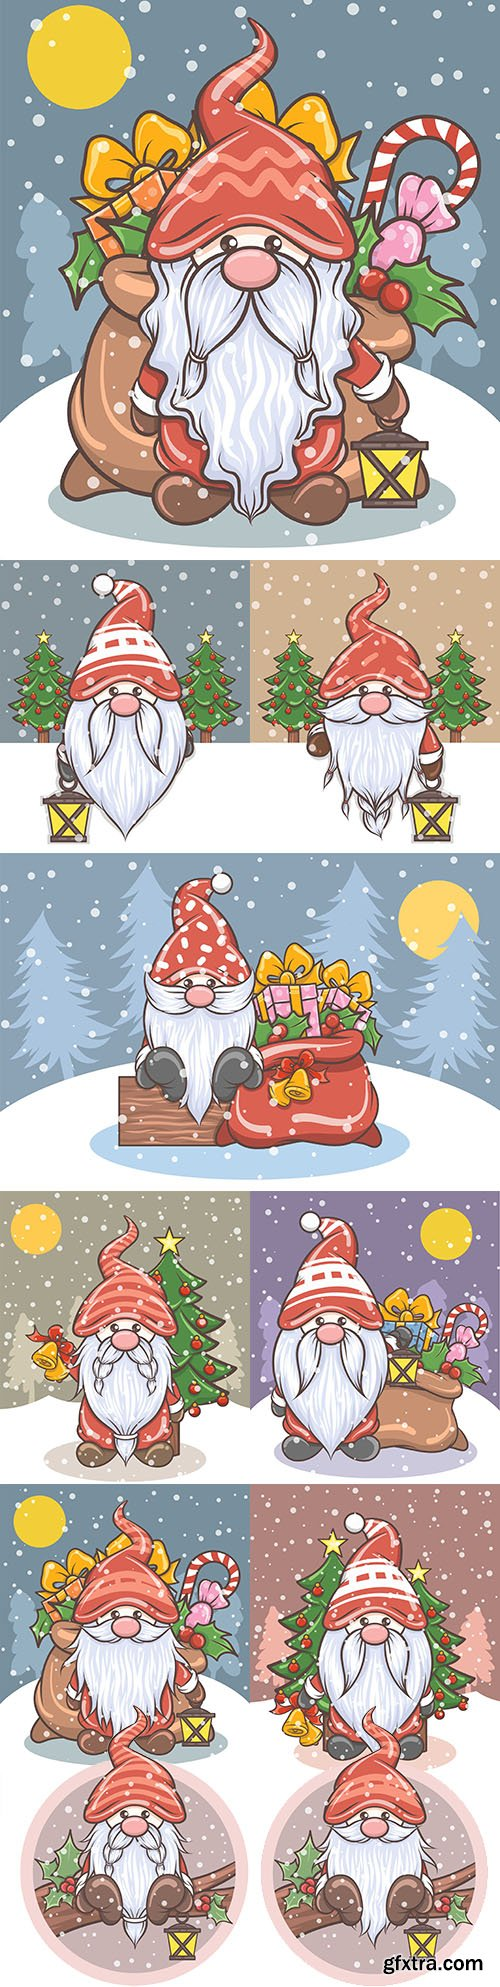 Cute gnome and gift bag cartoon character illustration